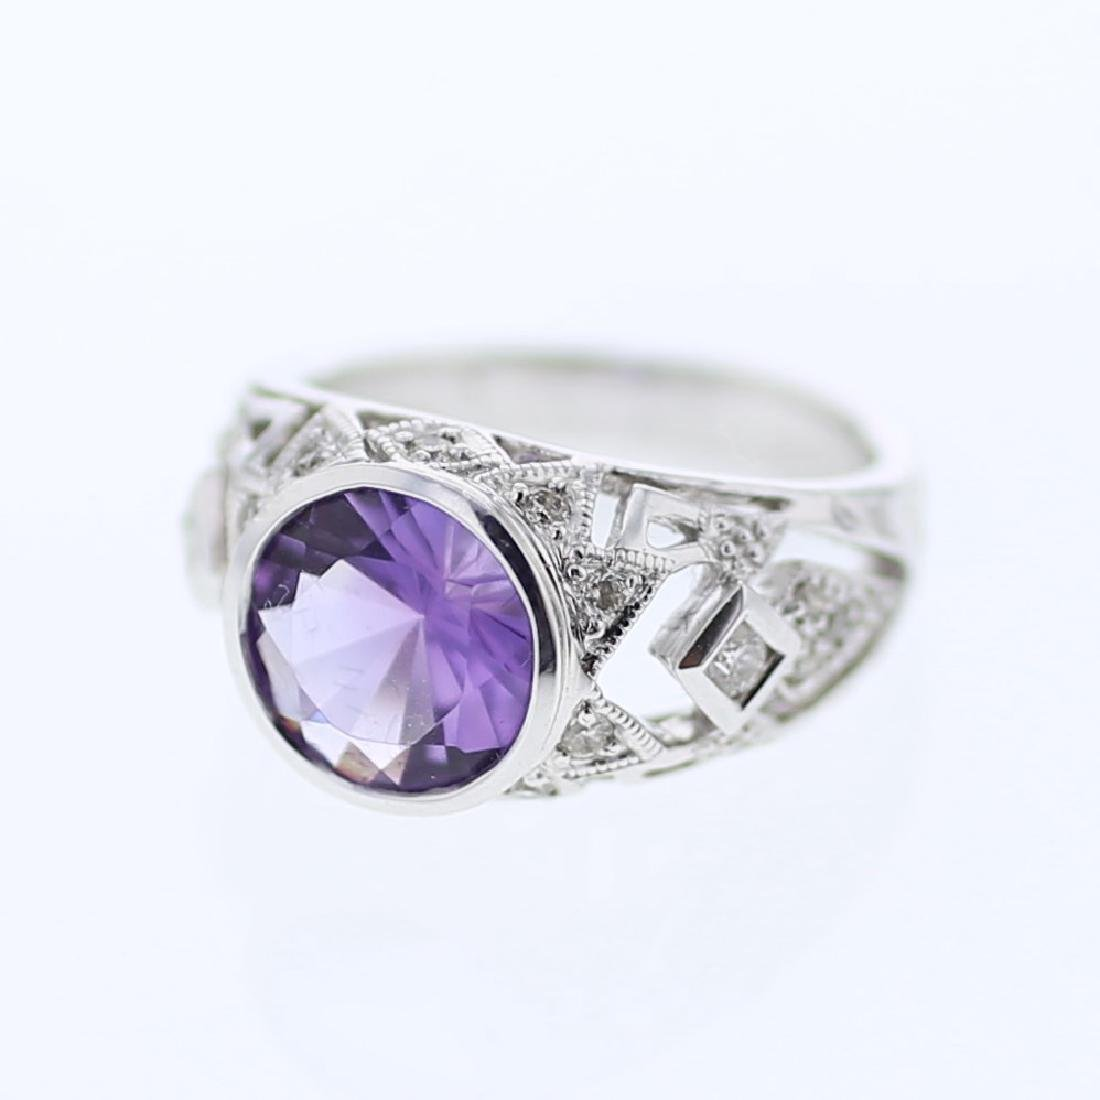 2.68 CTW Amethyst & Diamond Cocktail Ring 14K White